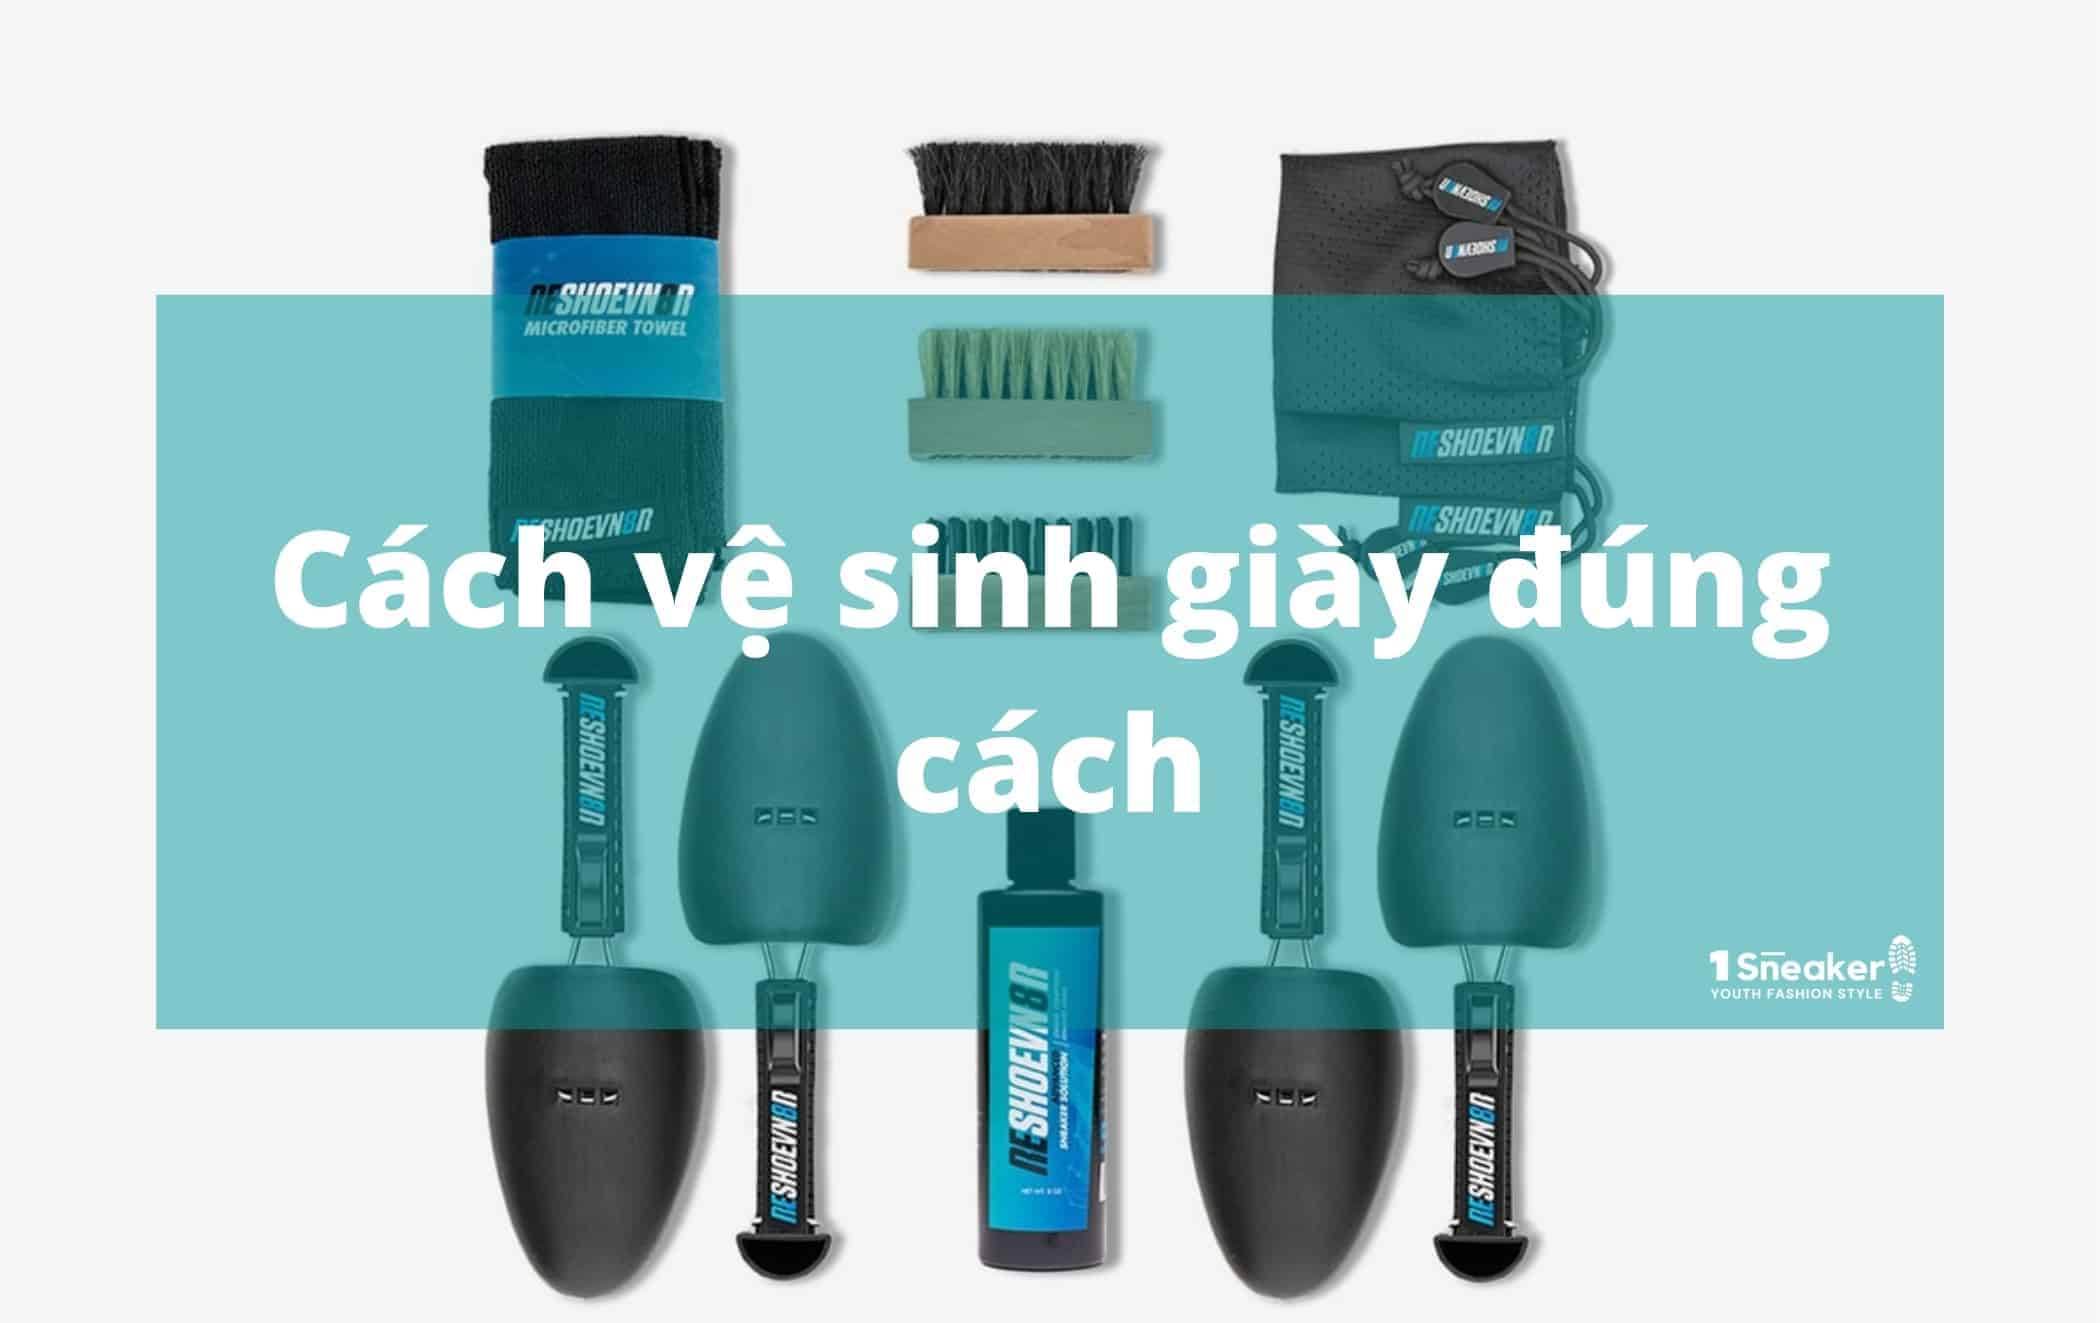 cach ve sinh giay dung cach